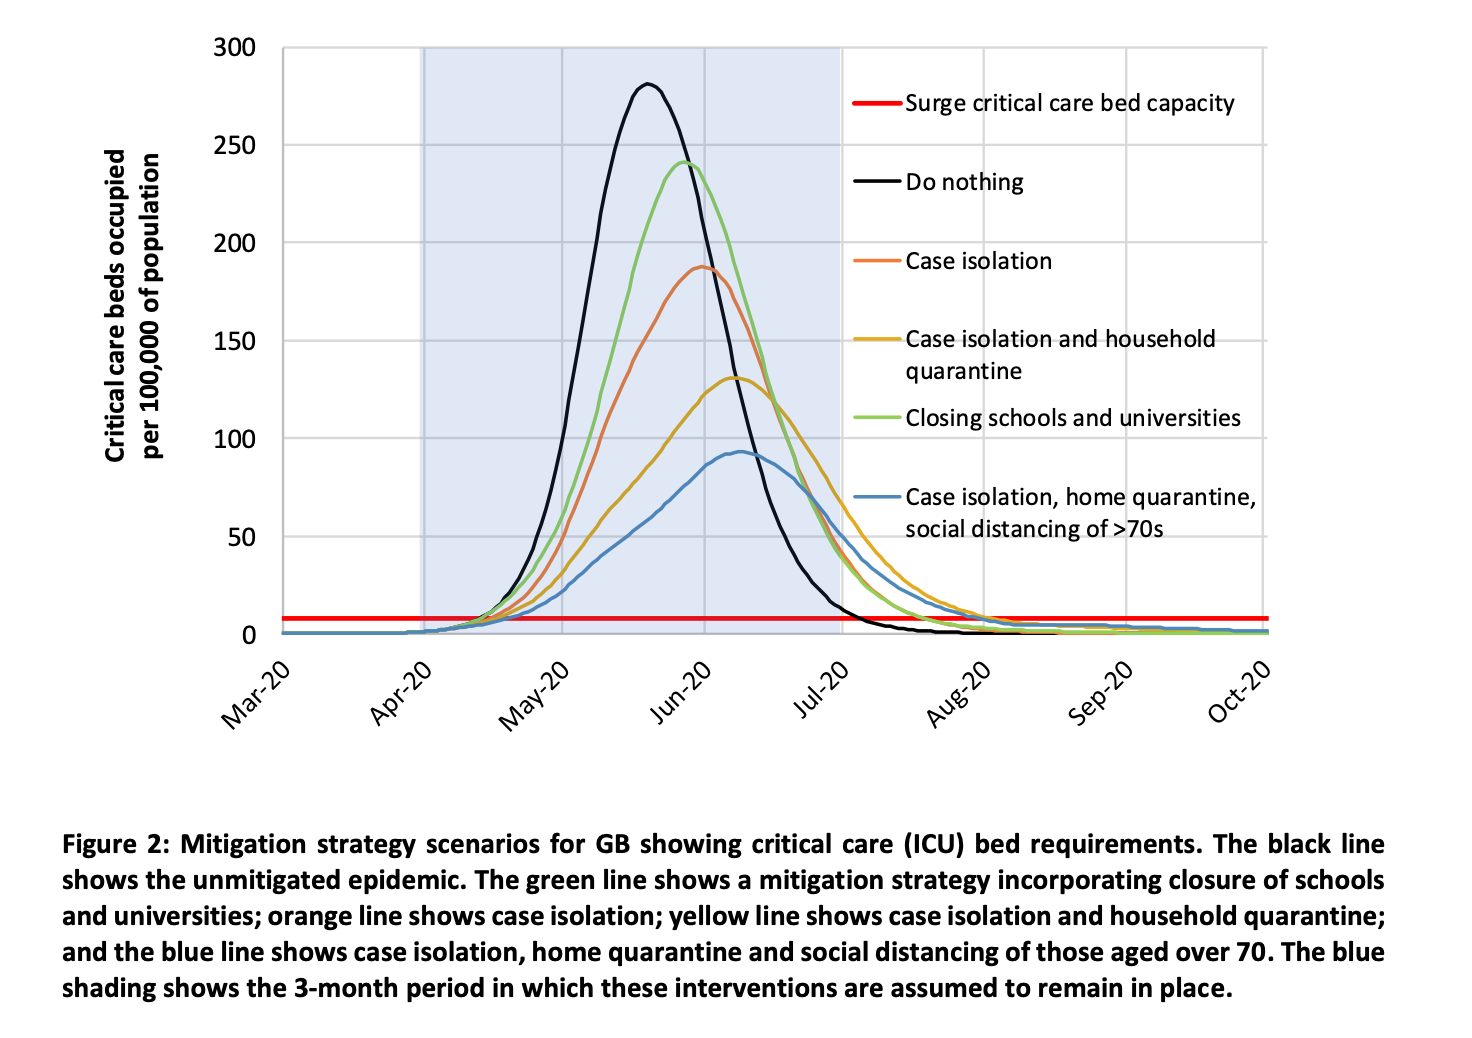 Mitigation strategy scenarios for GB showing critical care (ICU) bed requirements